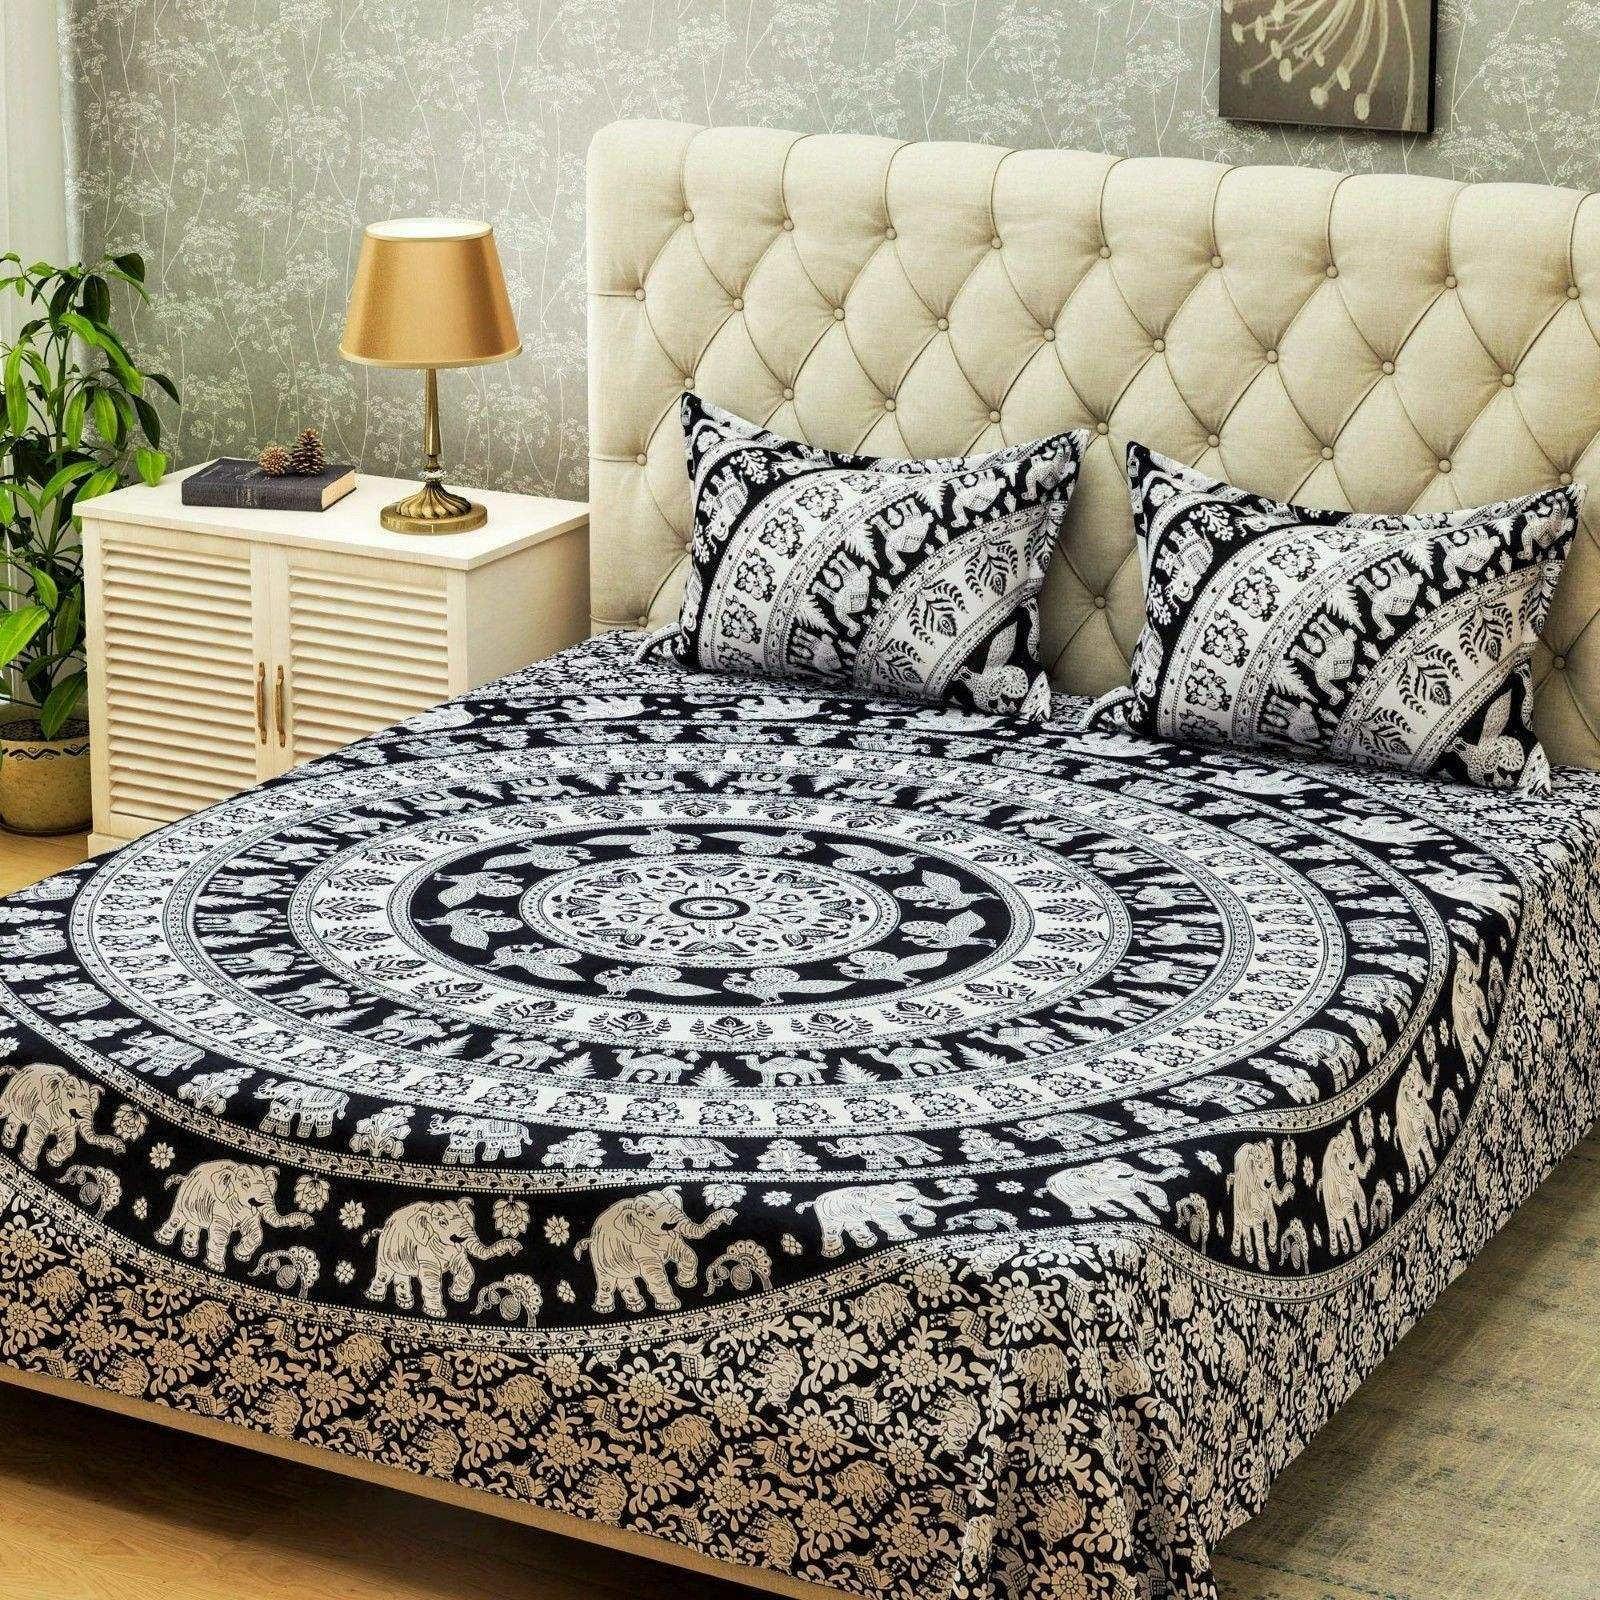 Double Bed Cover White And Black Cotton Elephant Printed Bed Sheet With Pillow Cover